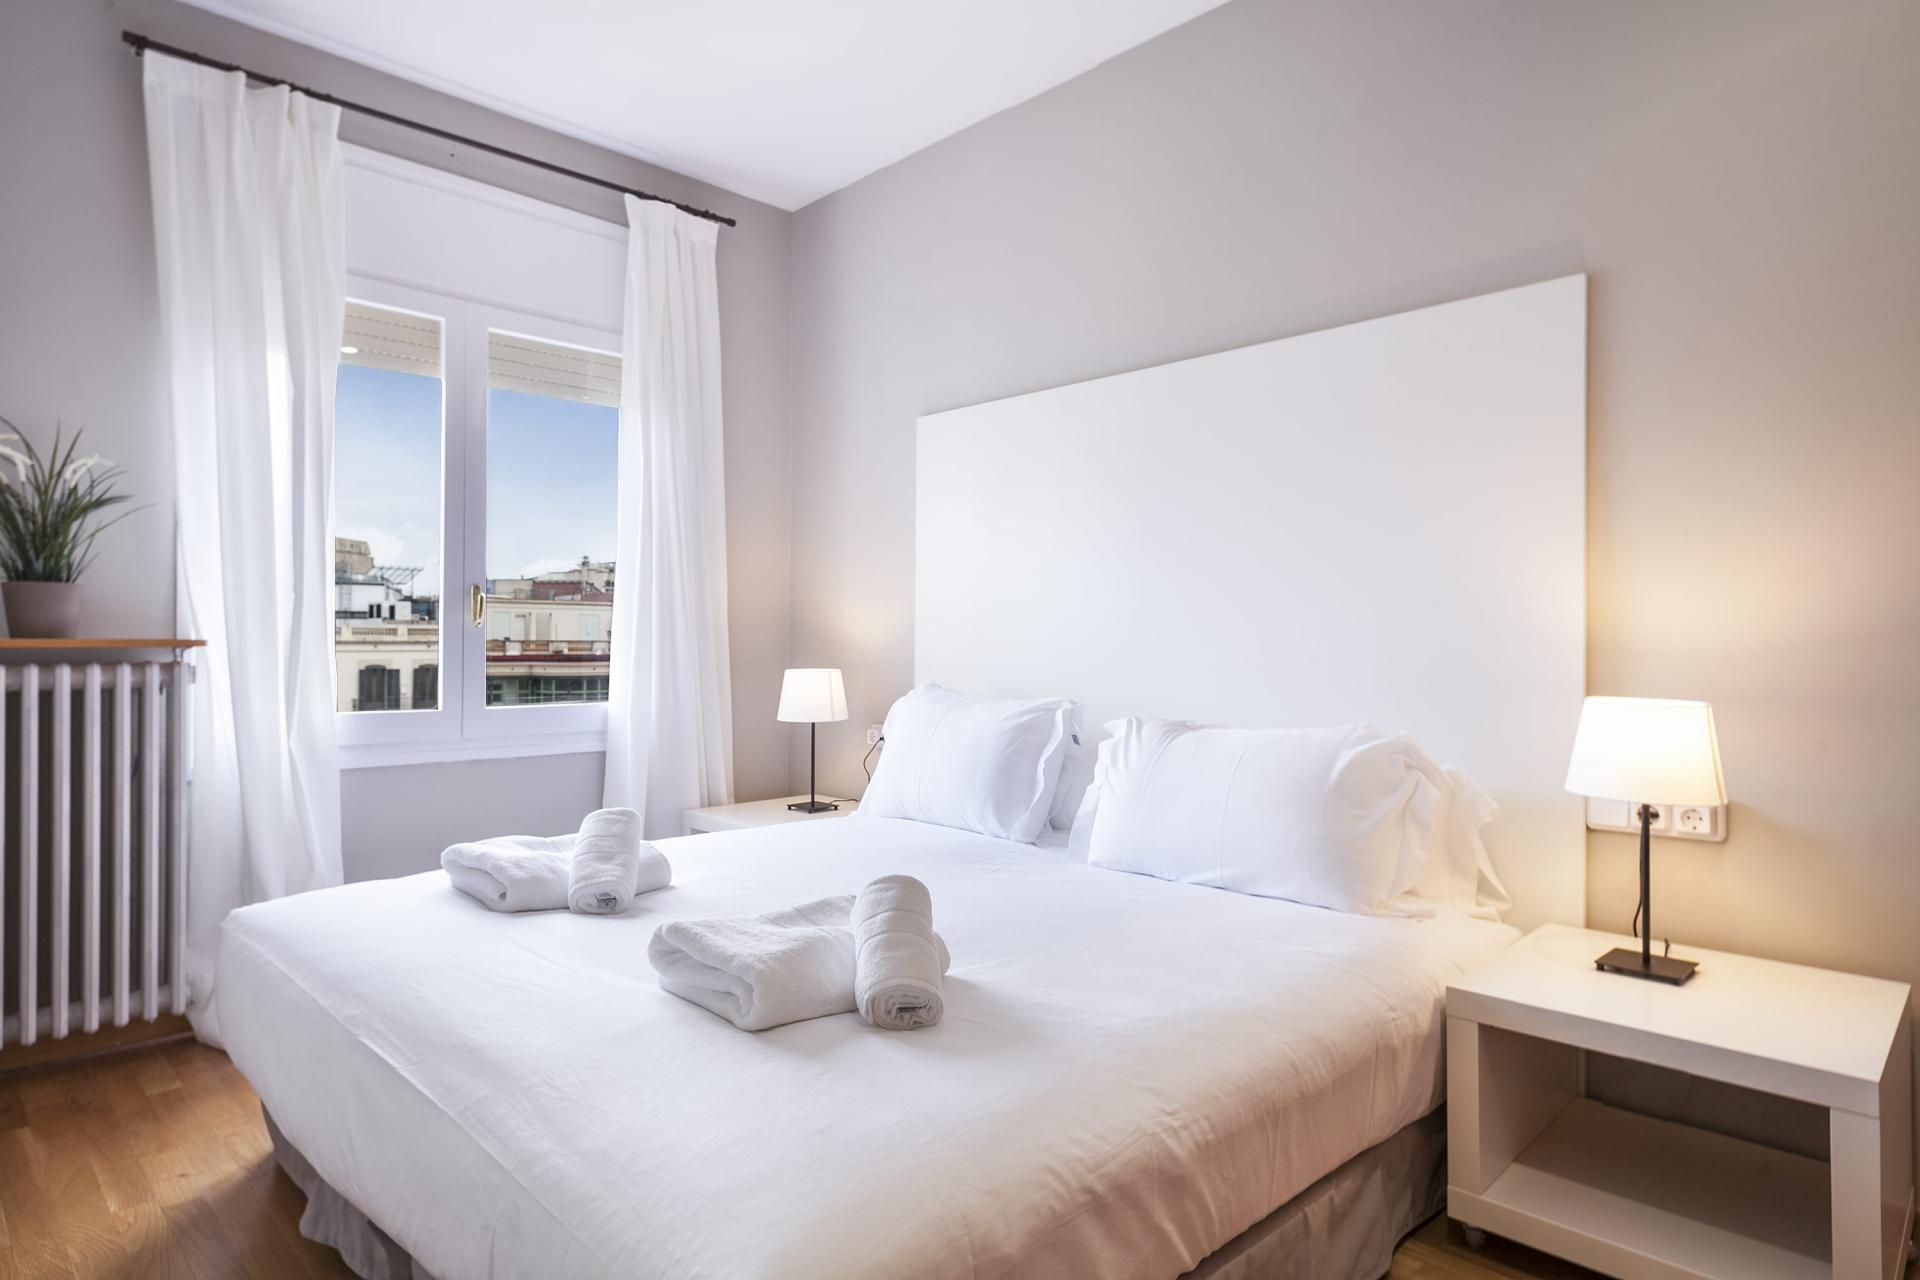 Bright bedroom at Sunny Serviced Apartments, Eixample, Barcelona - Citybase Apartments